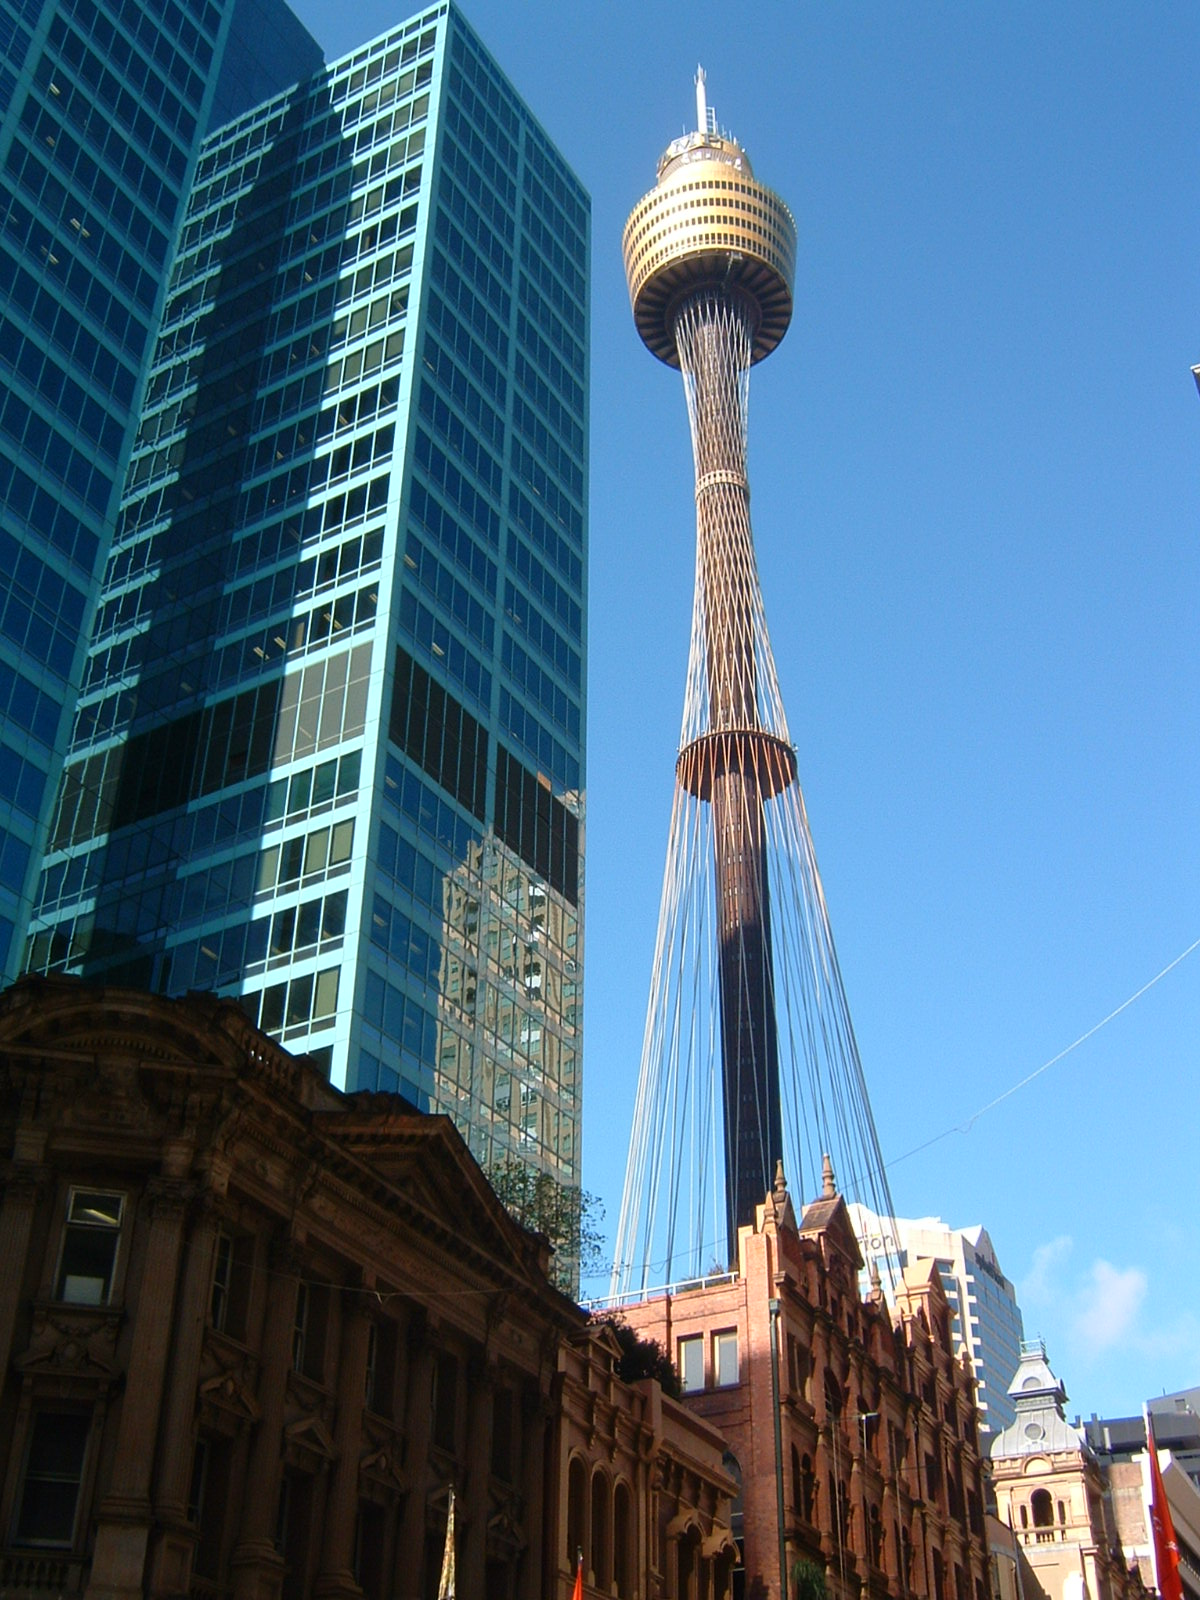 Sydney Tower - Tower in Sydney - Thousand Wonders